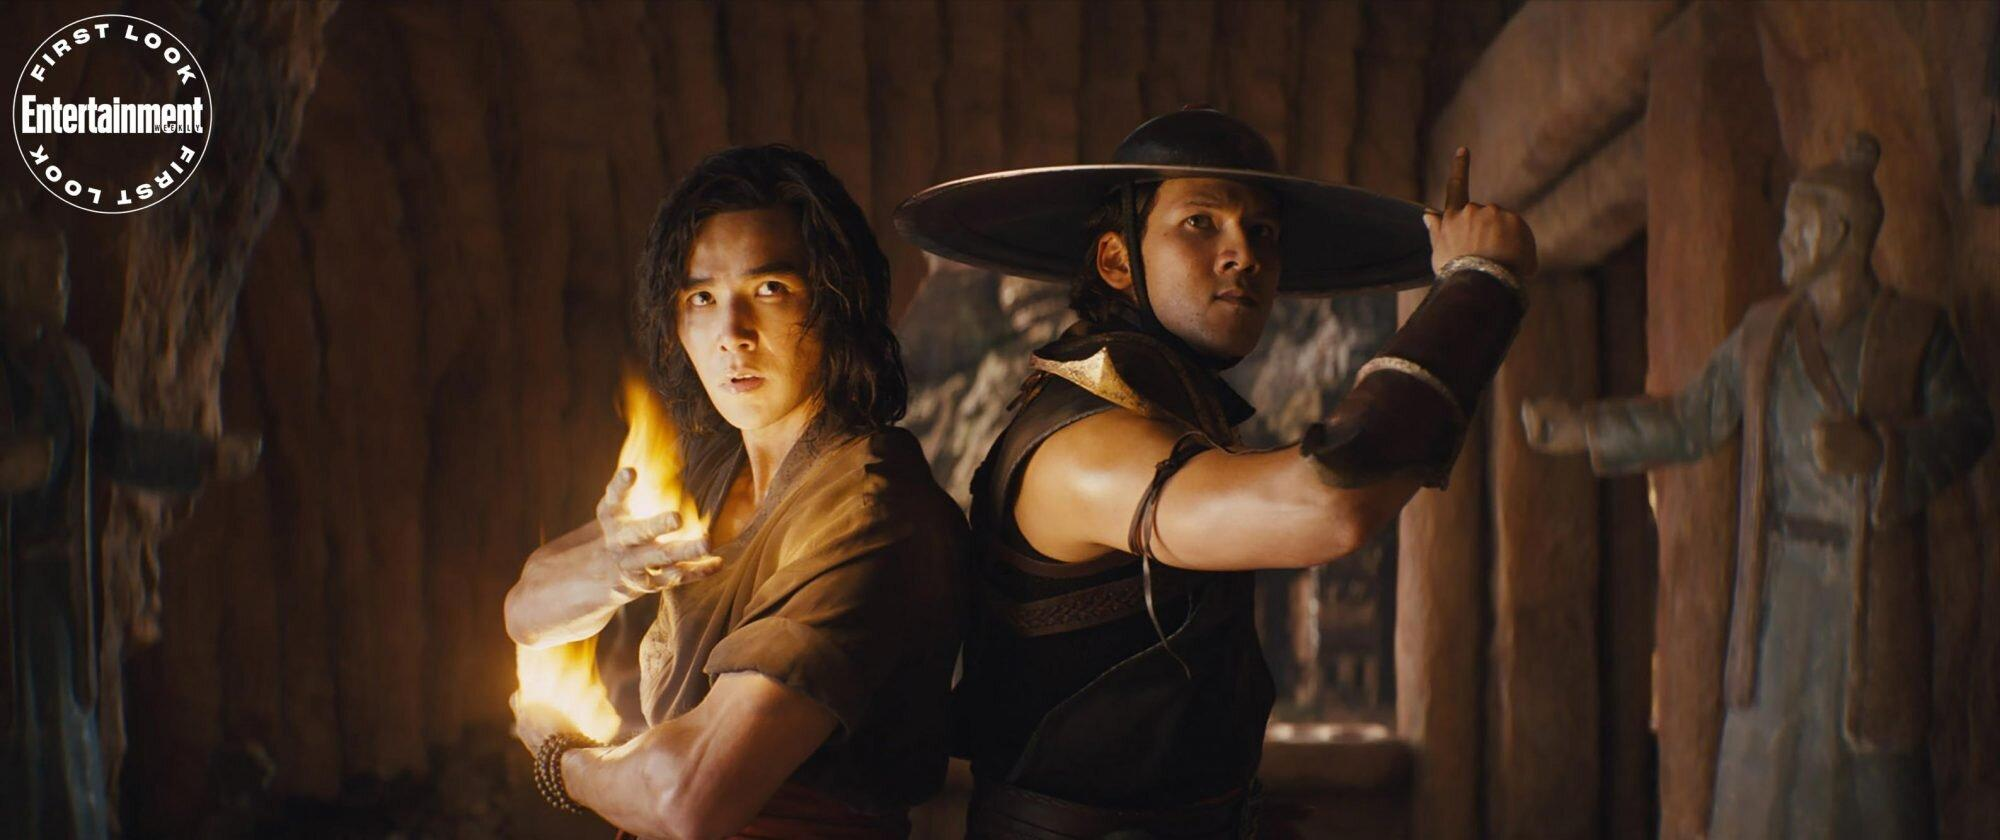 Mortal Kombat first look: Inside the R-rated reboot, fatalities and all